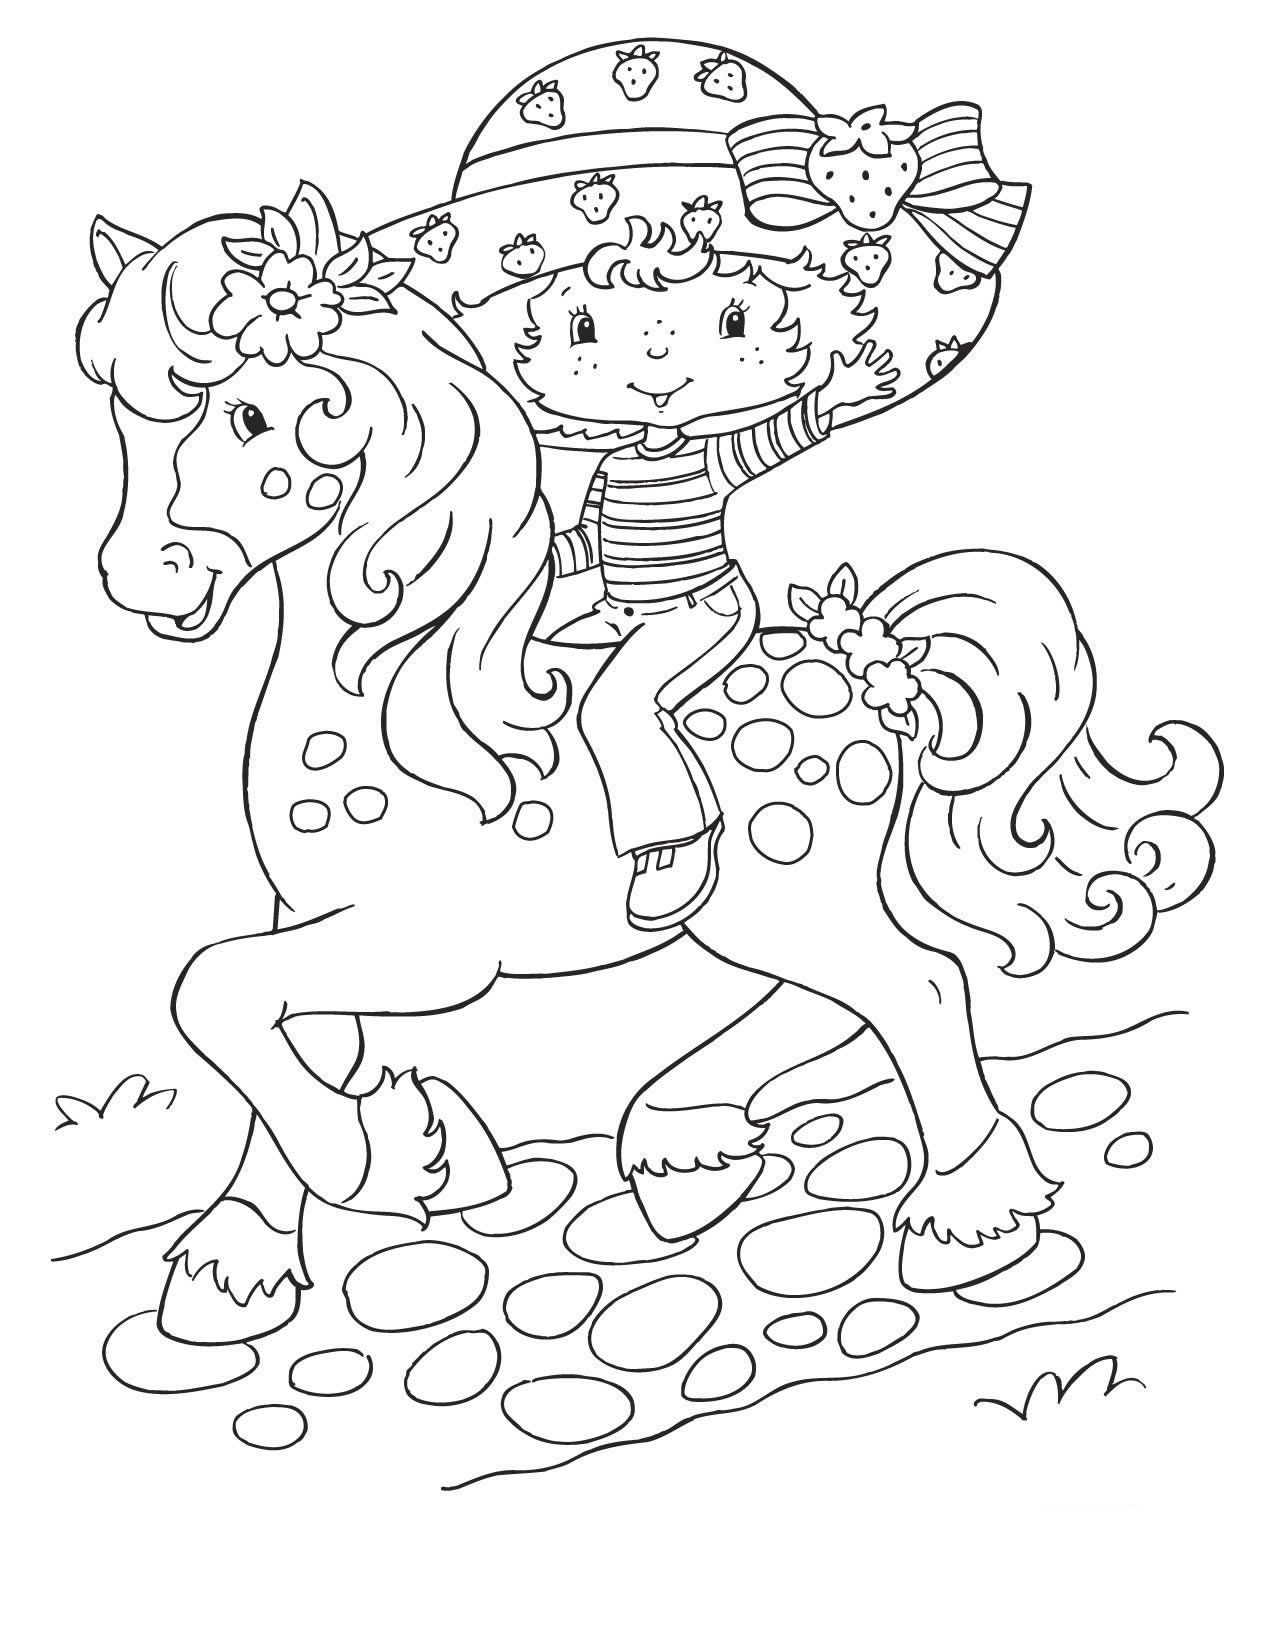 Image result for charlotteus web coloring pages coloring pages